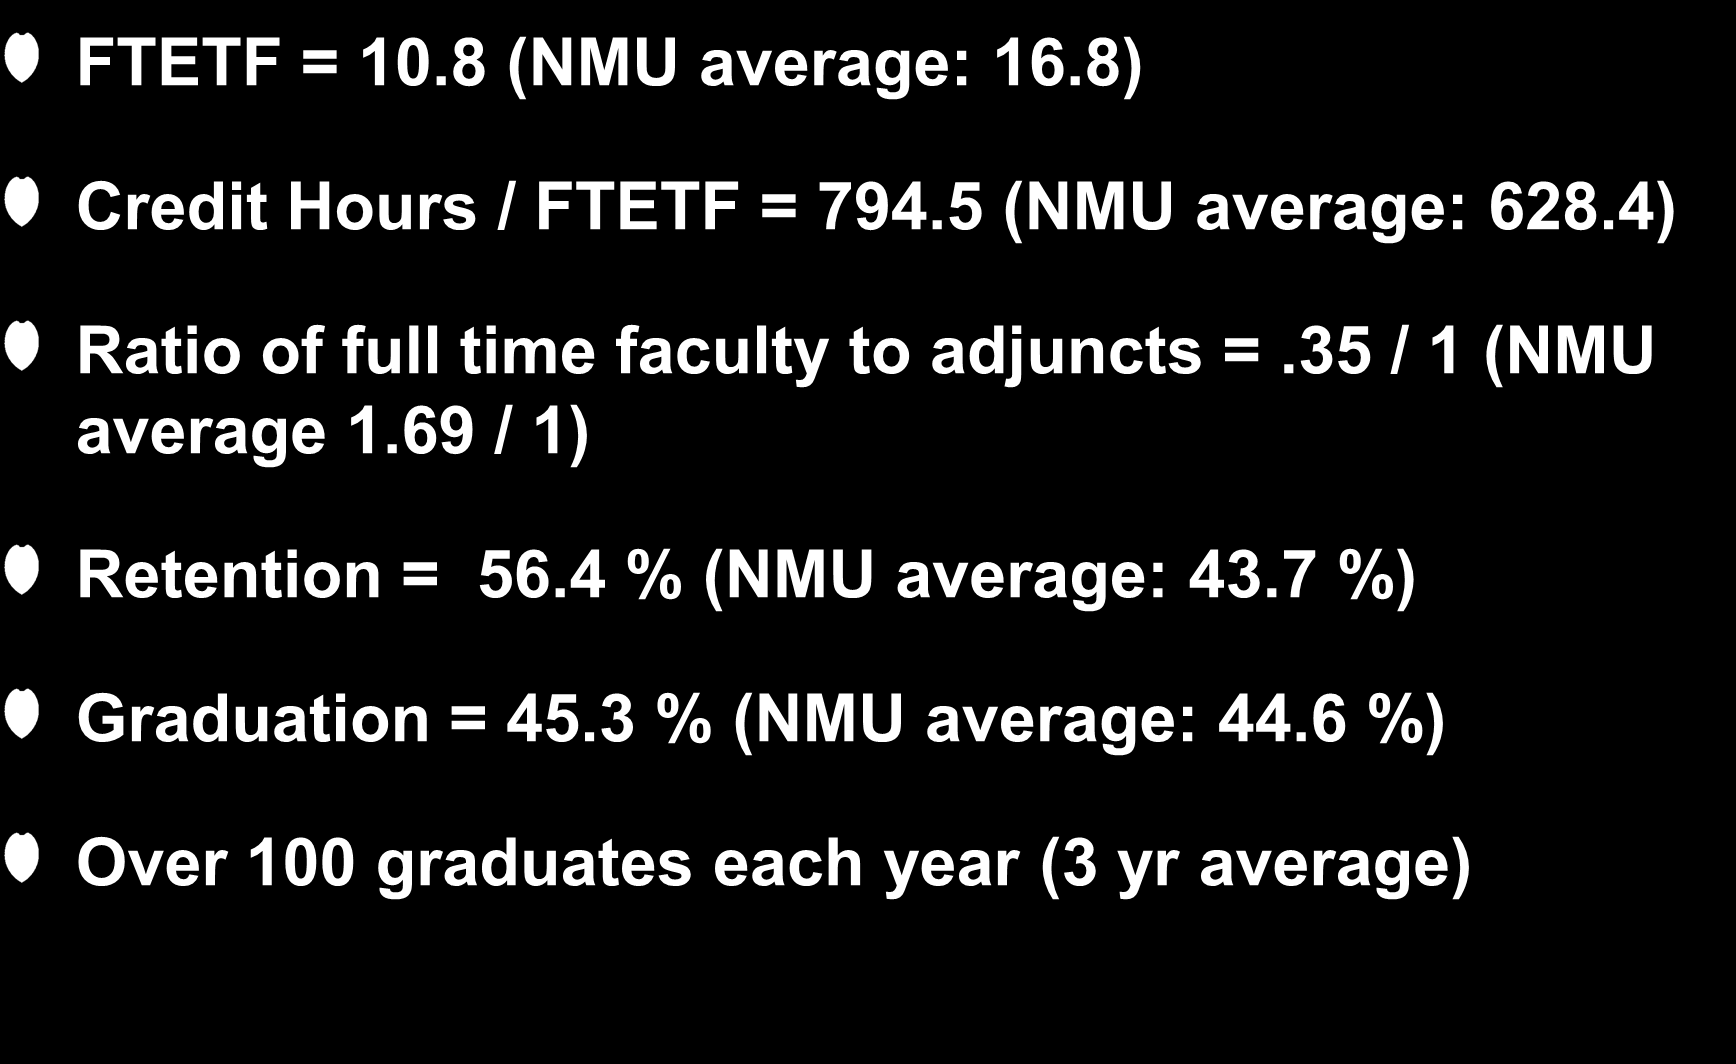 Criteria #7: Size, Scope and Productivity FTETF = 10.8 (NMU average: 16.8) Credit Hours / FTETF = 794.5 (NMU average: 628.